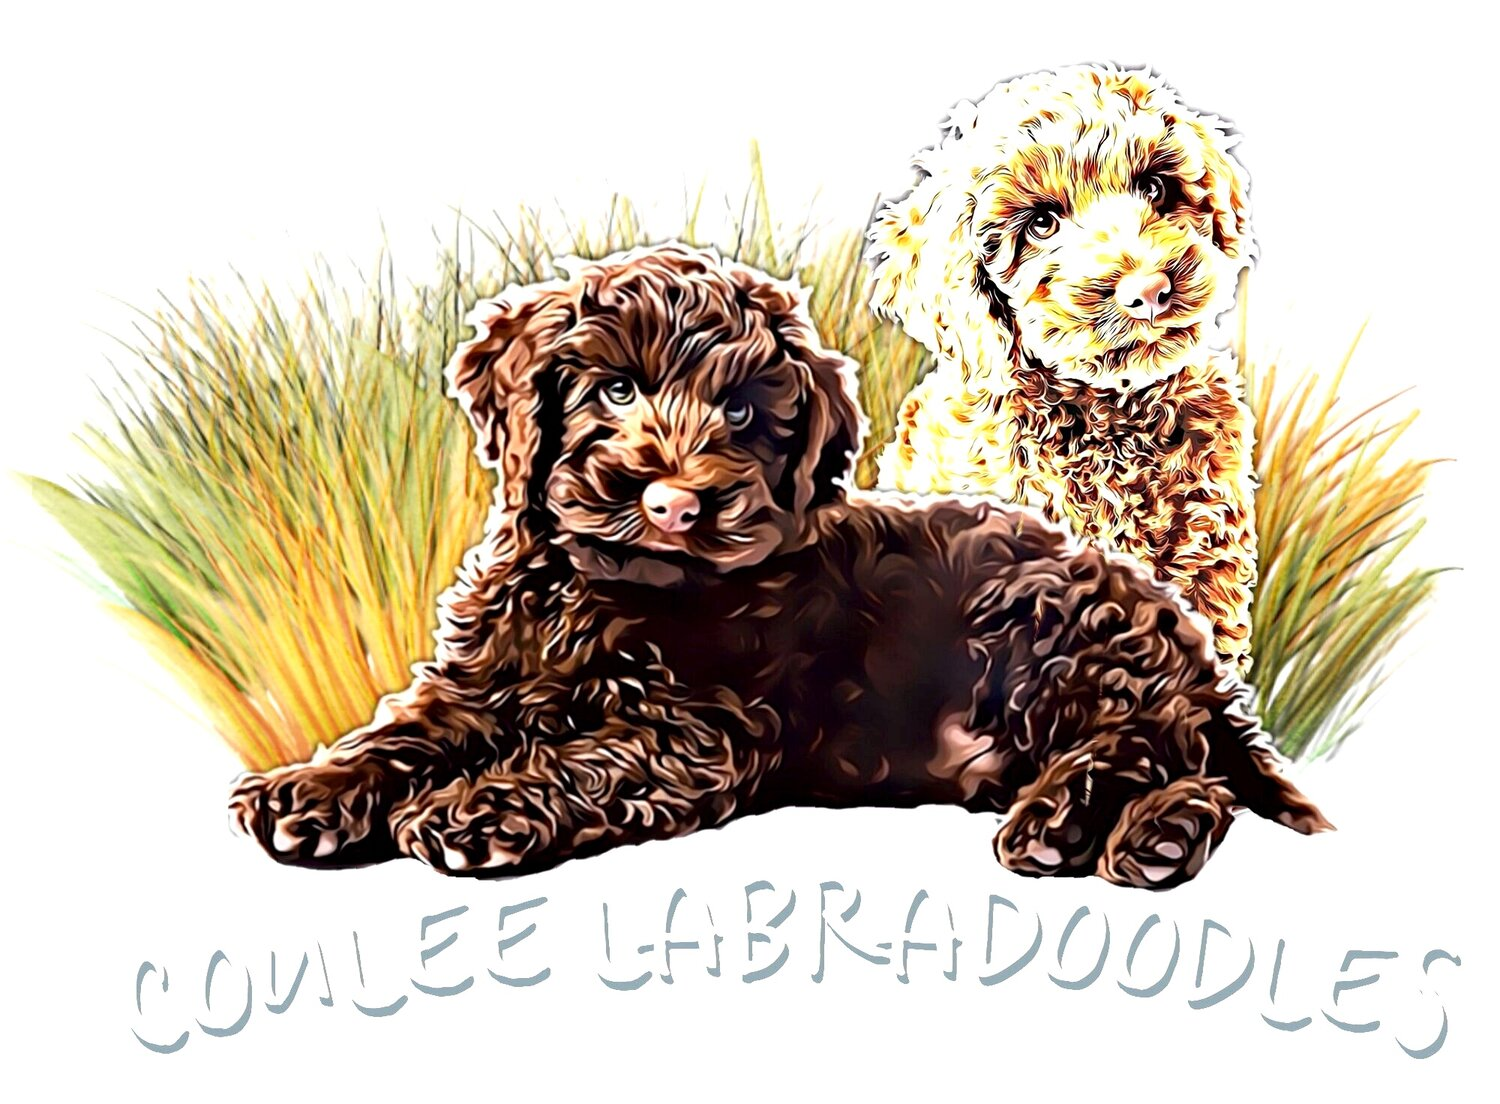 Coulee Labradoodles